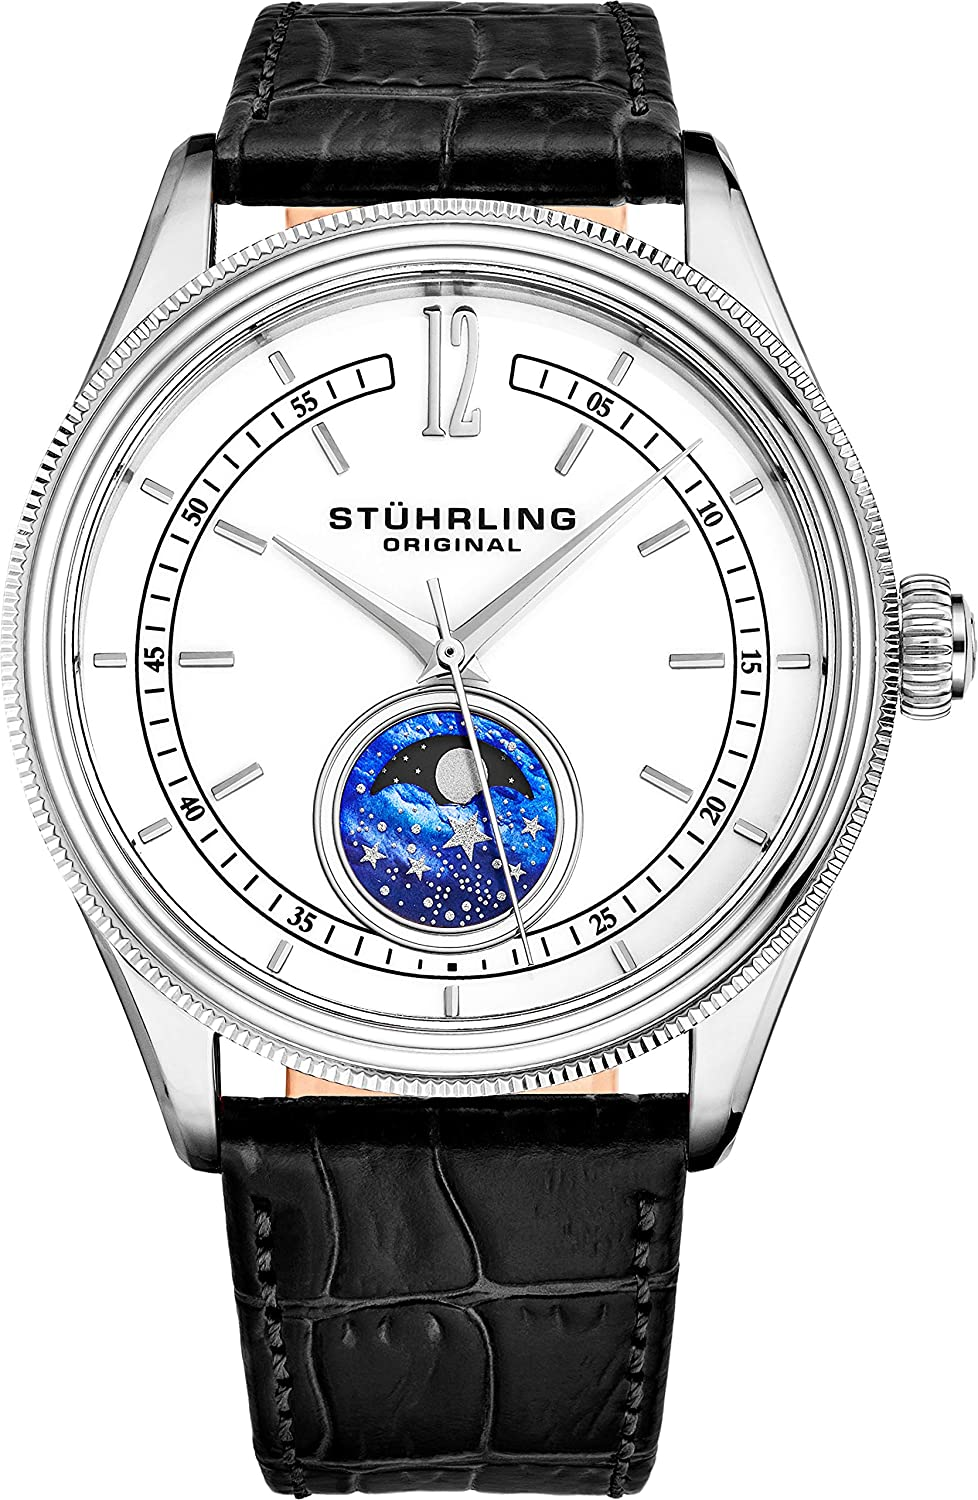 Stuhrling Original MoonPhase Dress Watch - Stainless Steel Case and Leather Band - Analog Dial - Celestia Mens Watches Collection